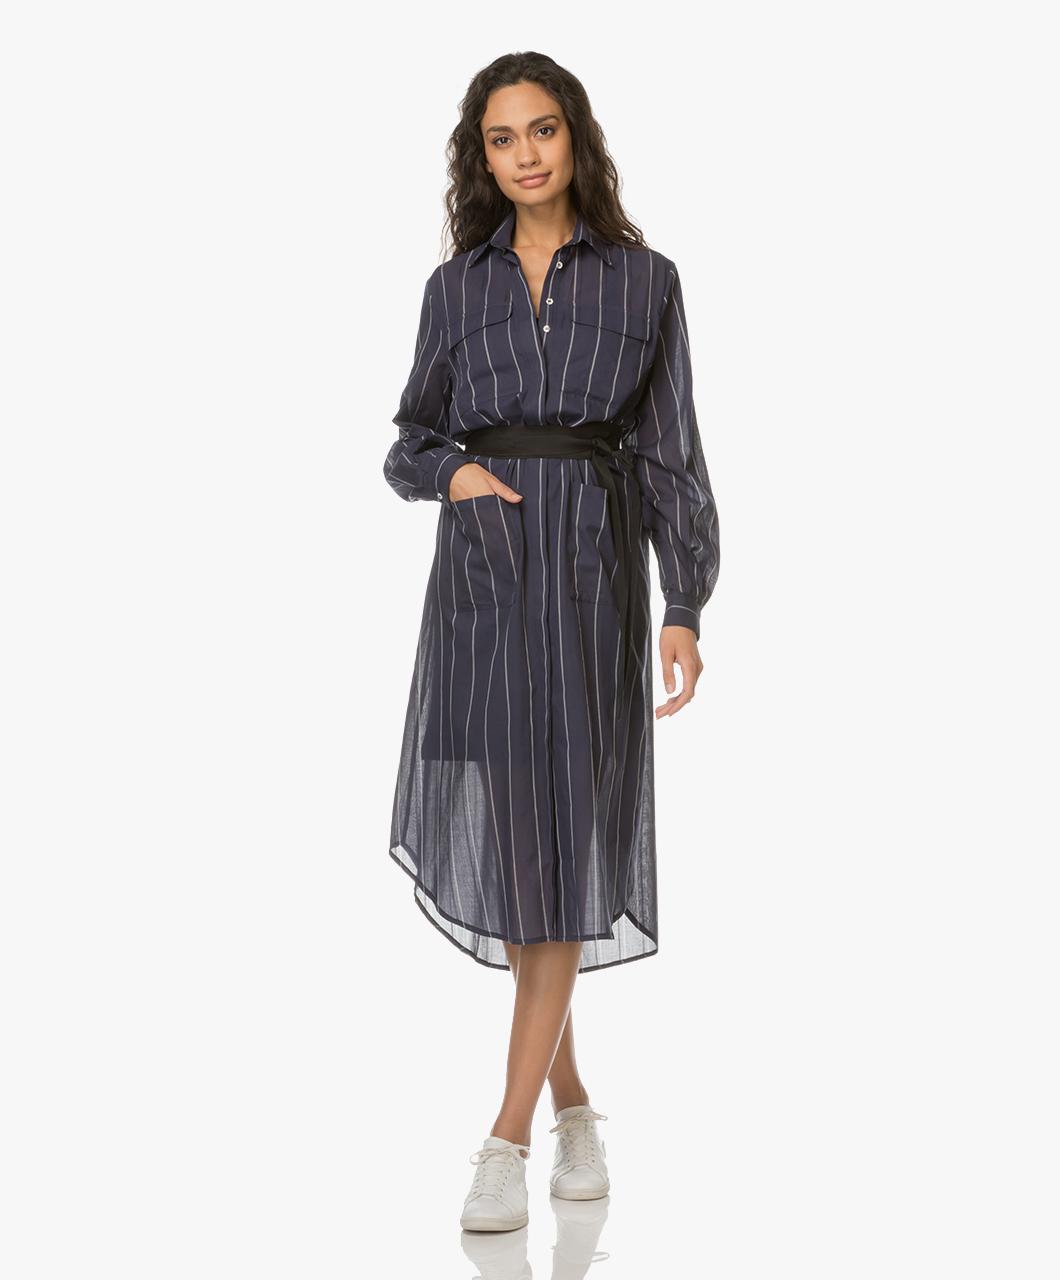 Super Matin Studio Long Cotton Shirt Dress - Navy Stripe - long shirt GJ-98